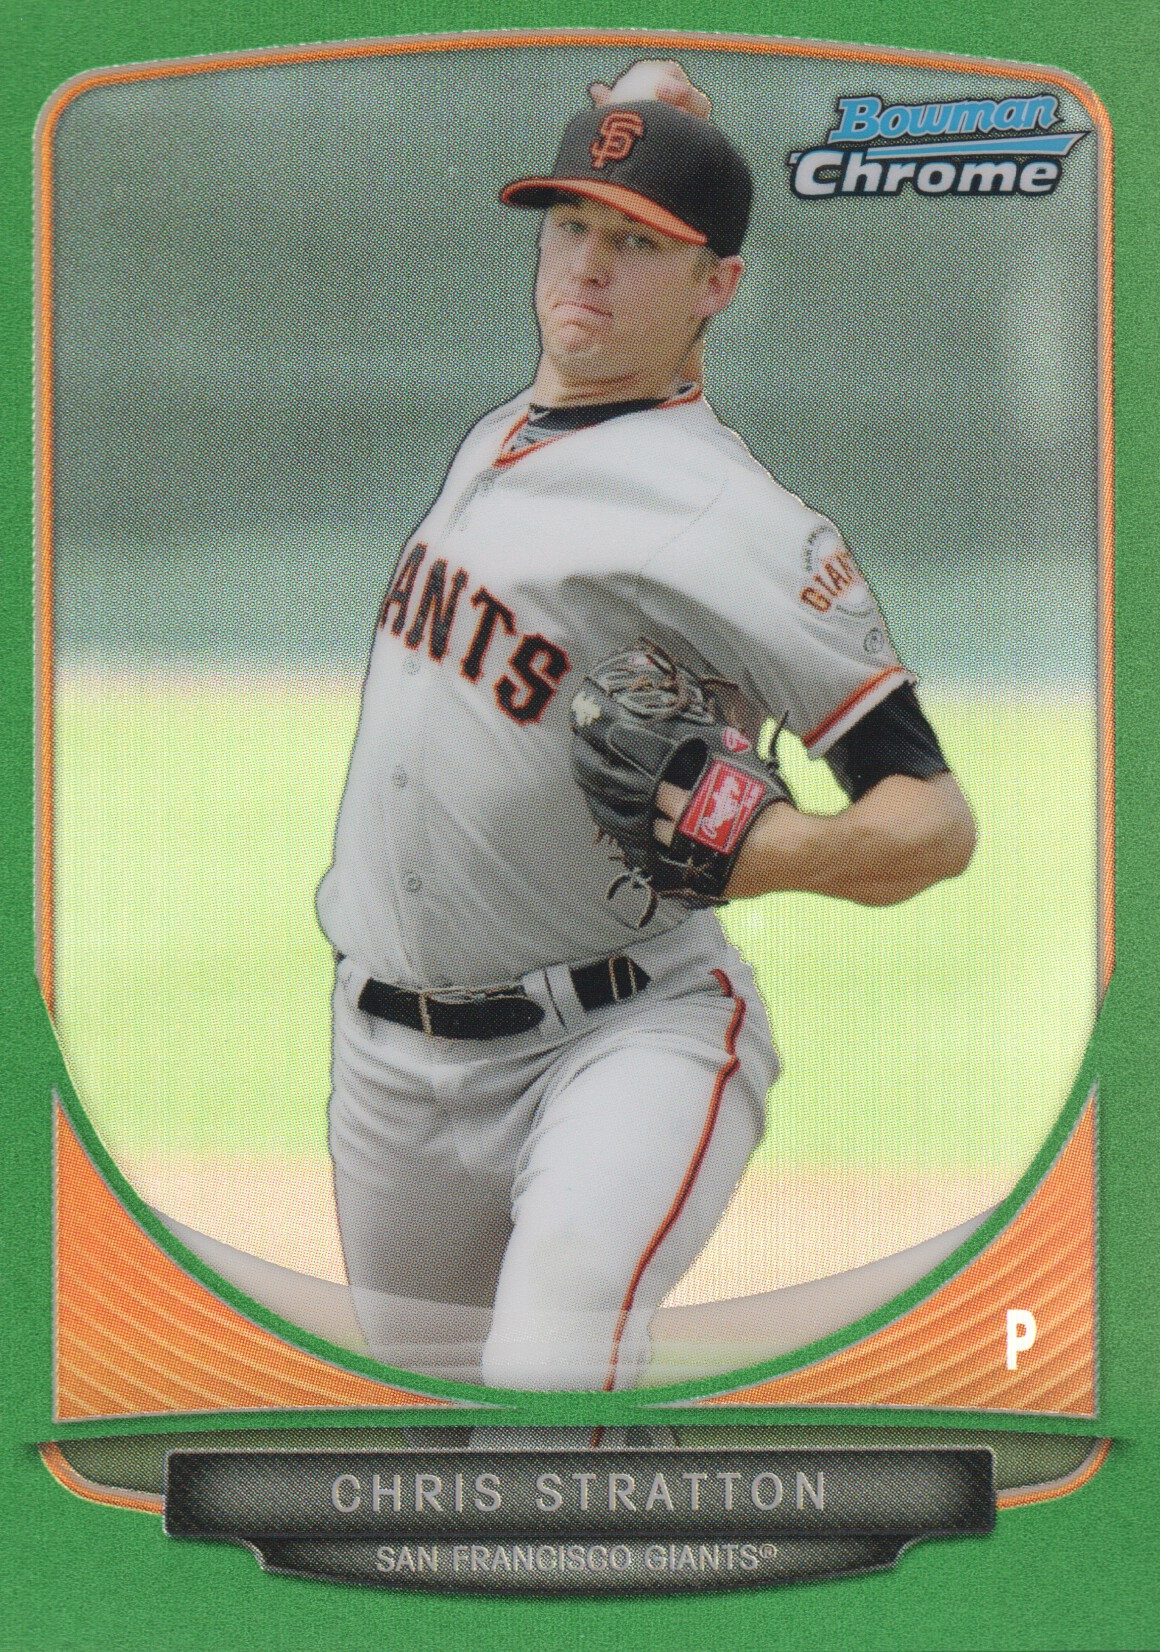 2013 Bowman Chrome Mini Green Refractors #23 Chris Stratton